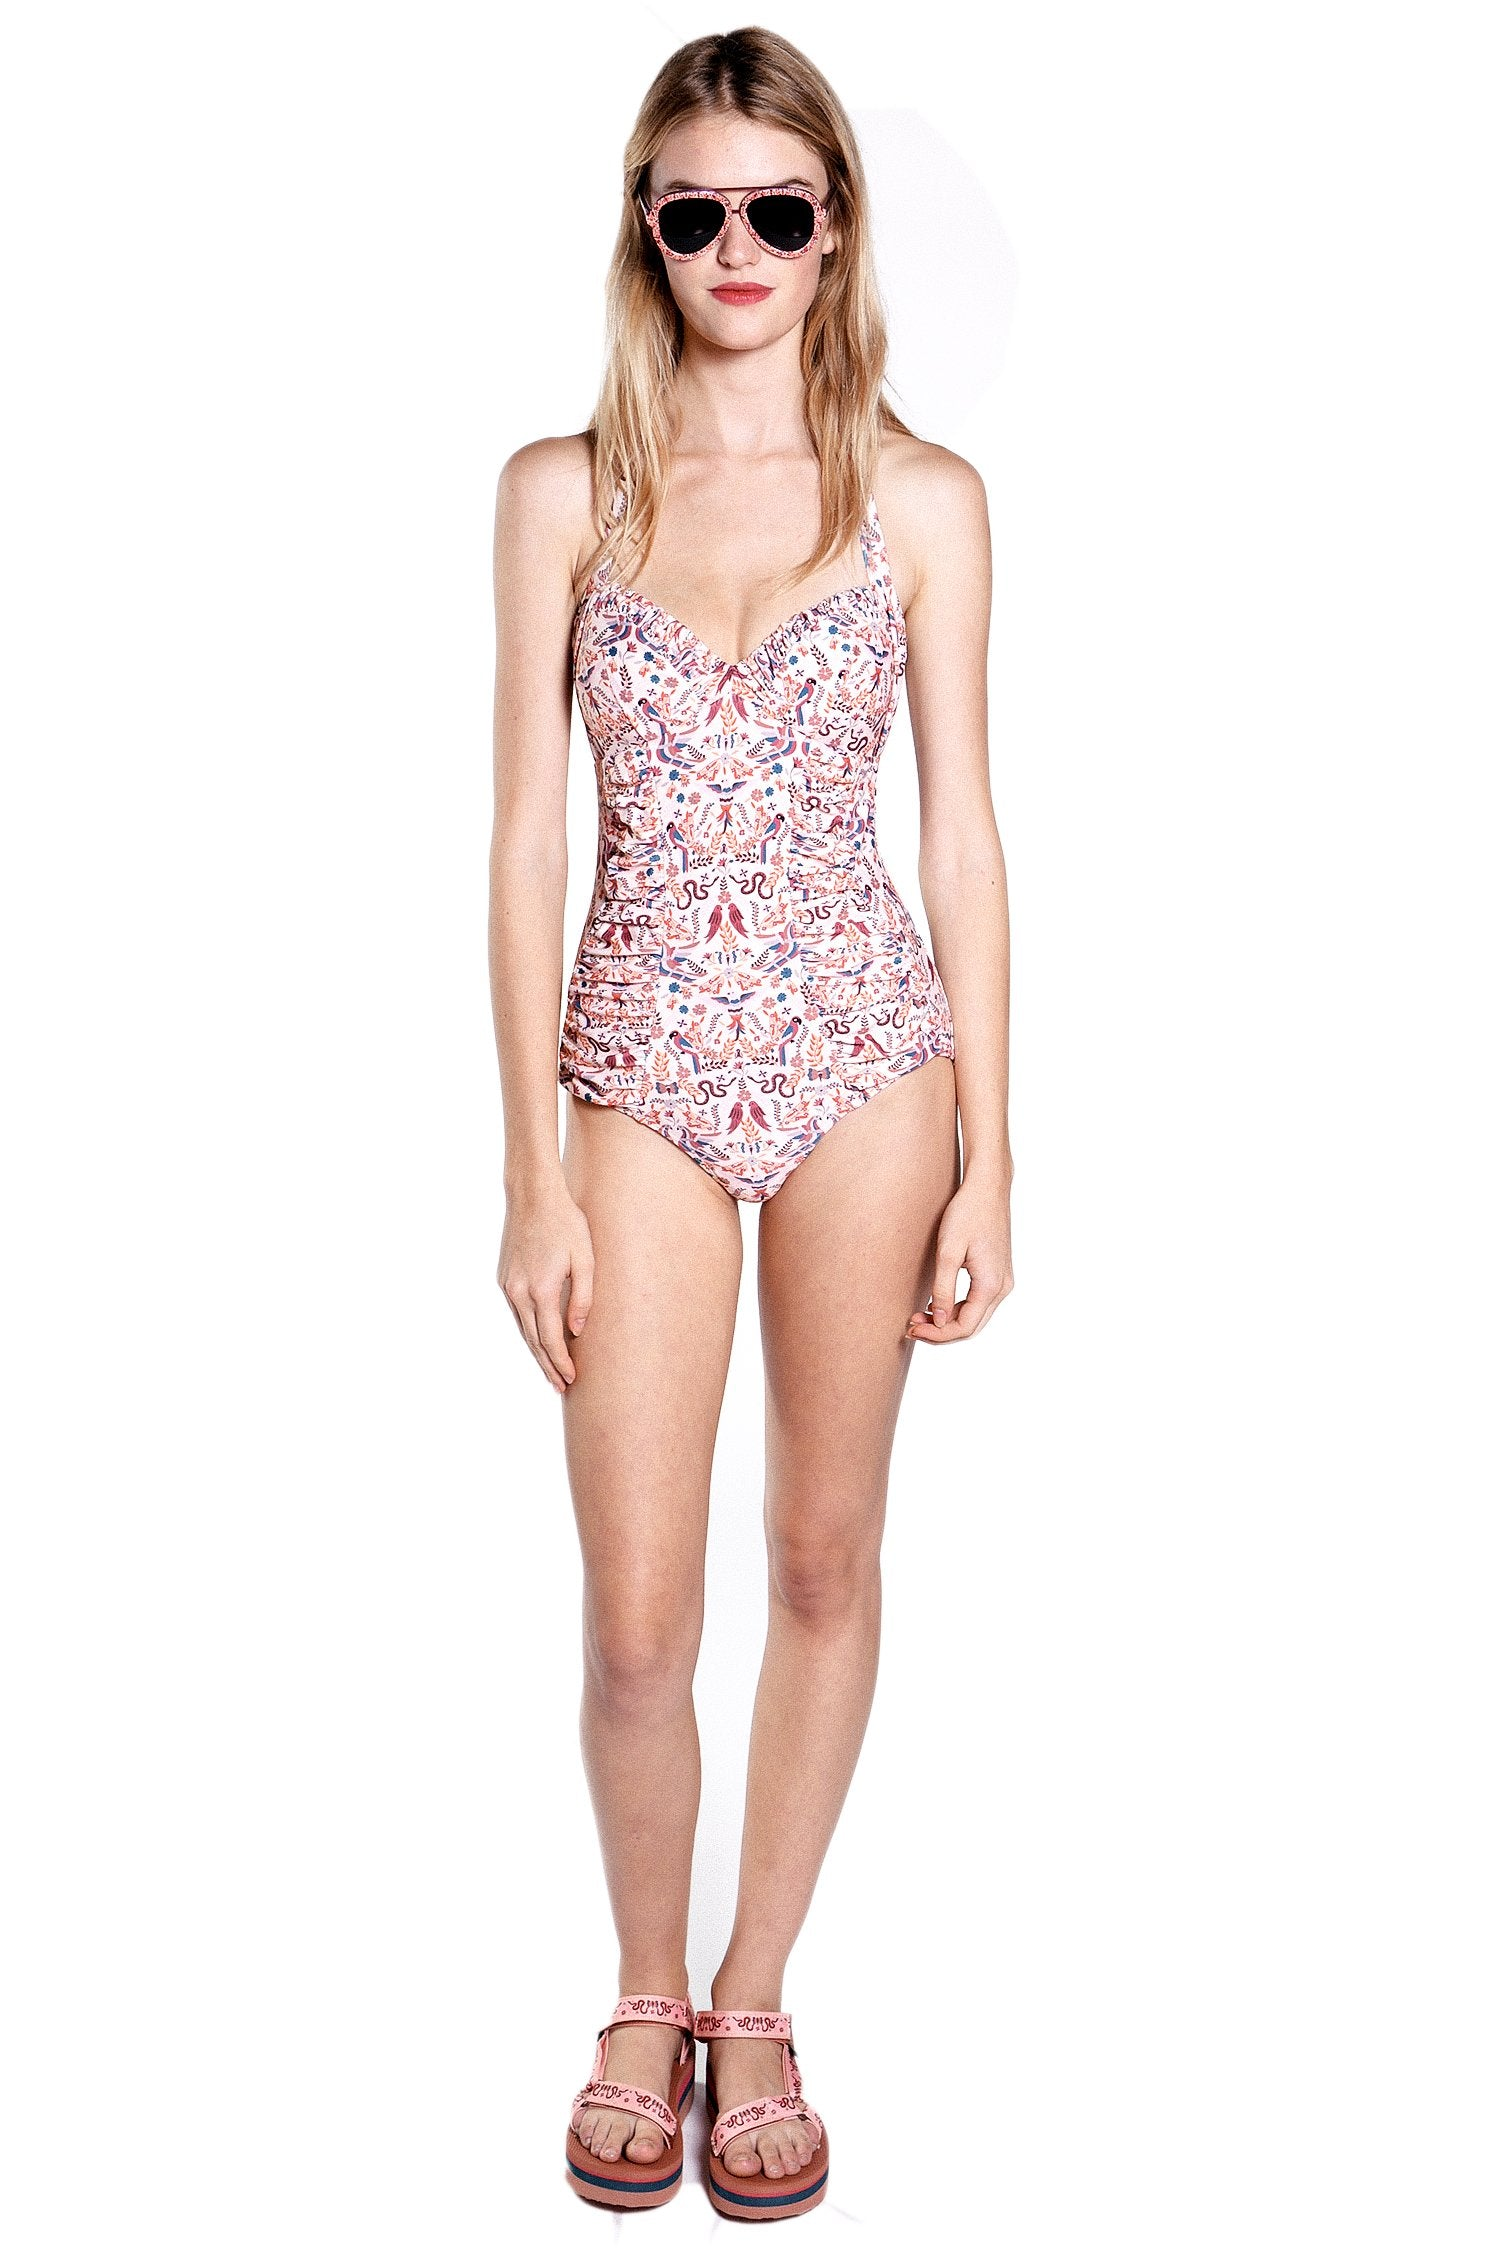 Garden of Eden Swimsuit - Anna Sui